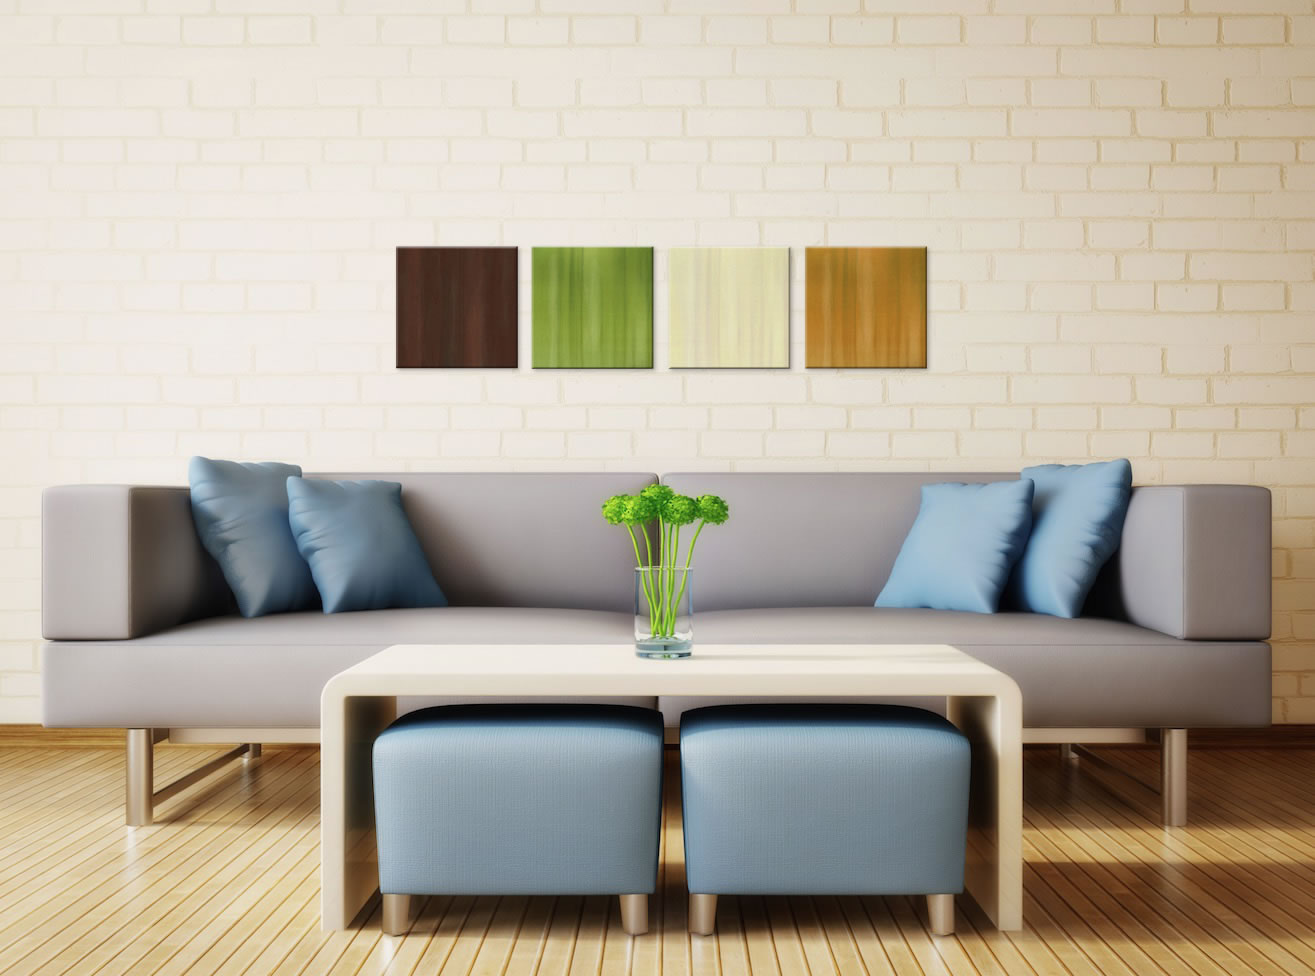 Cottage - Colorful Contemporary Accents by Celeste Reiter - Lifestyle Image